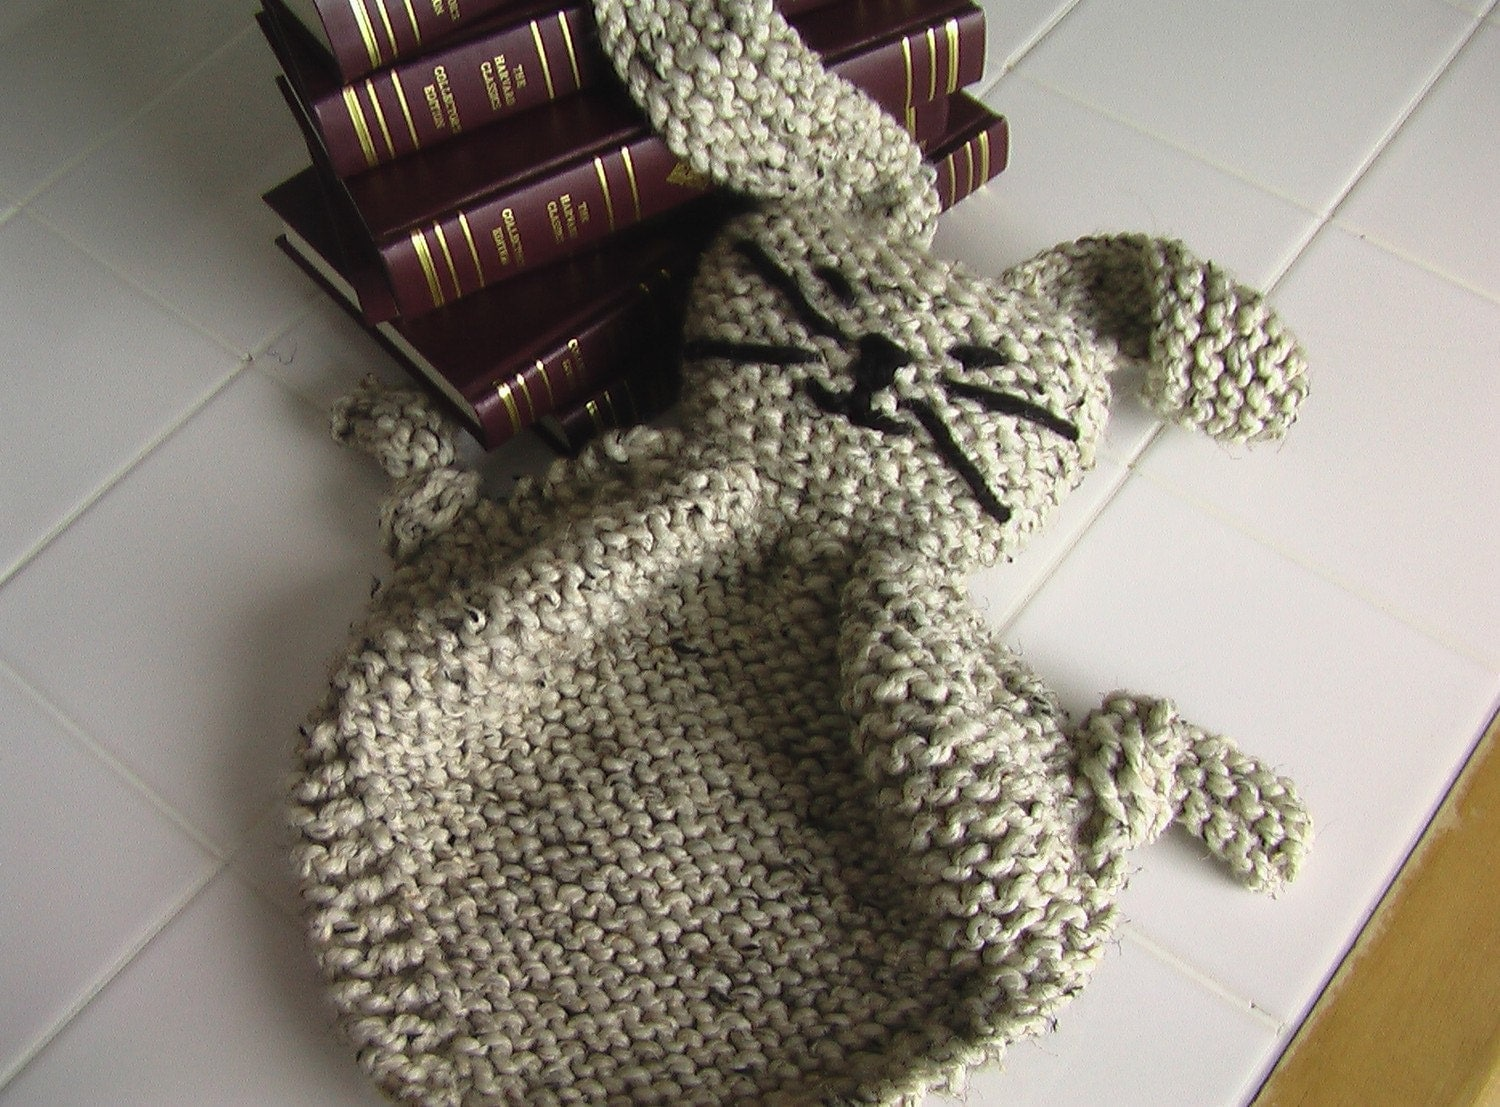 Buddy Blanket Knitting Pattern : Large Knit Bunny Blanket Buddy. by ItStartedWithYarn on Etsy